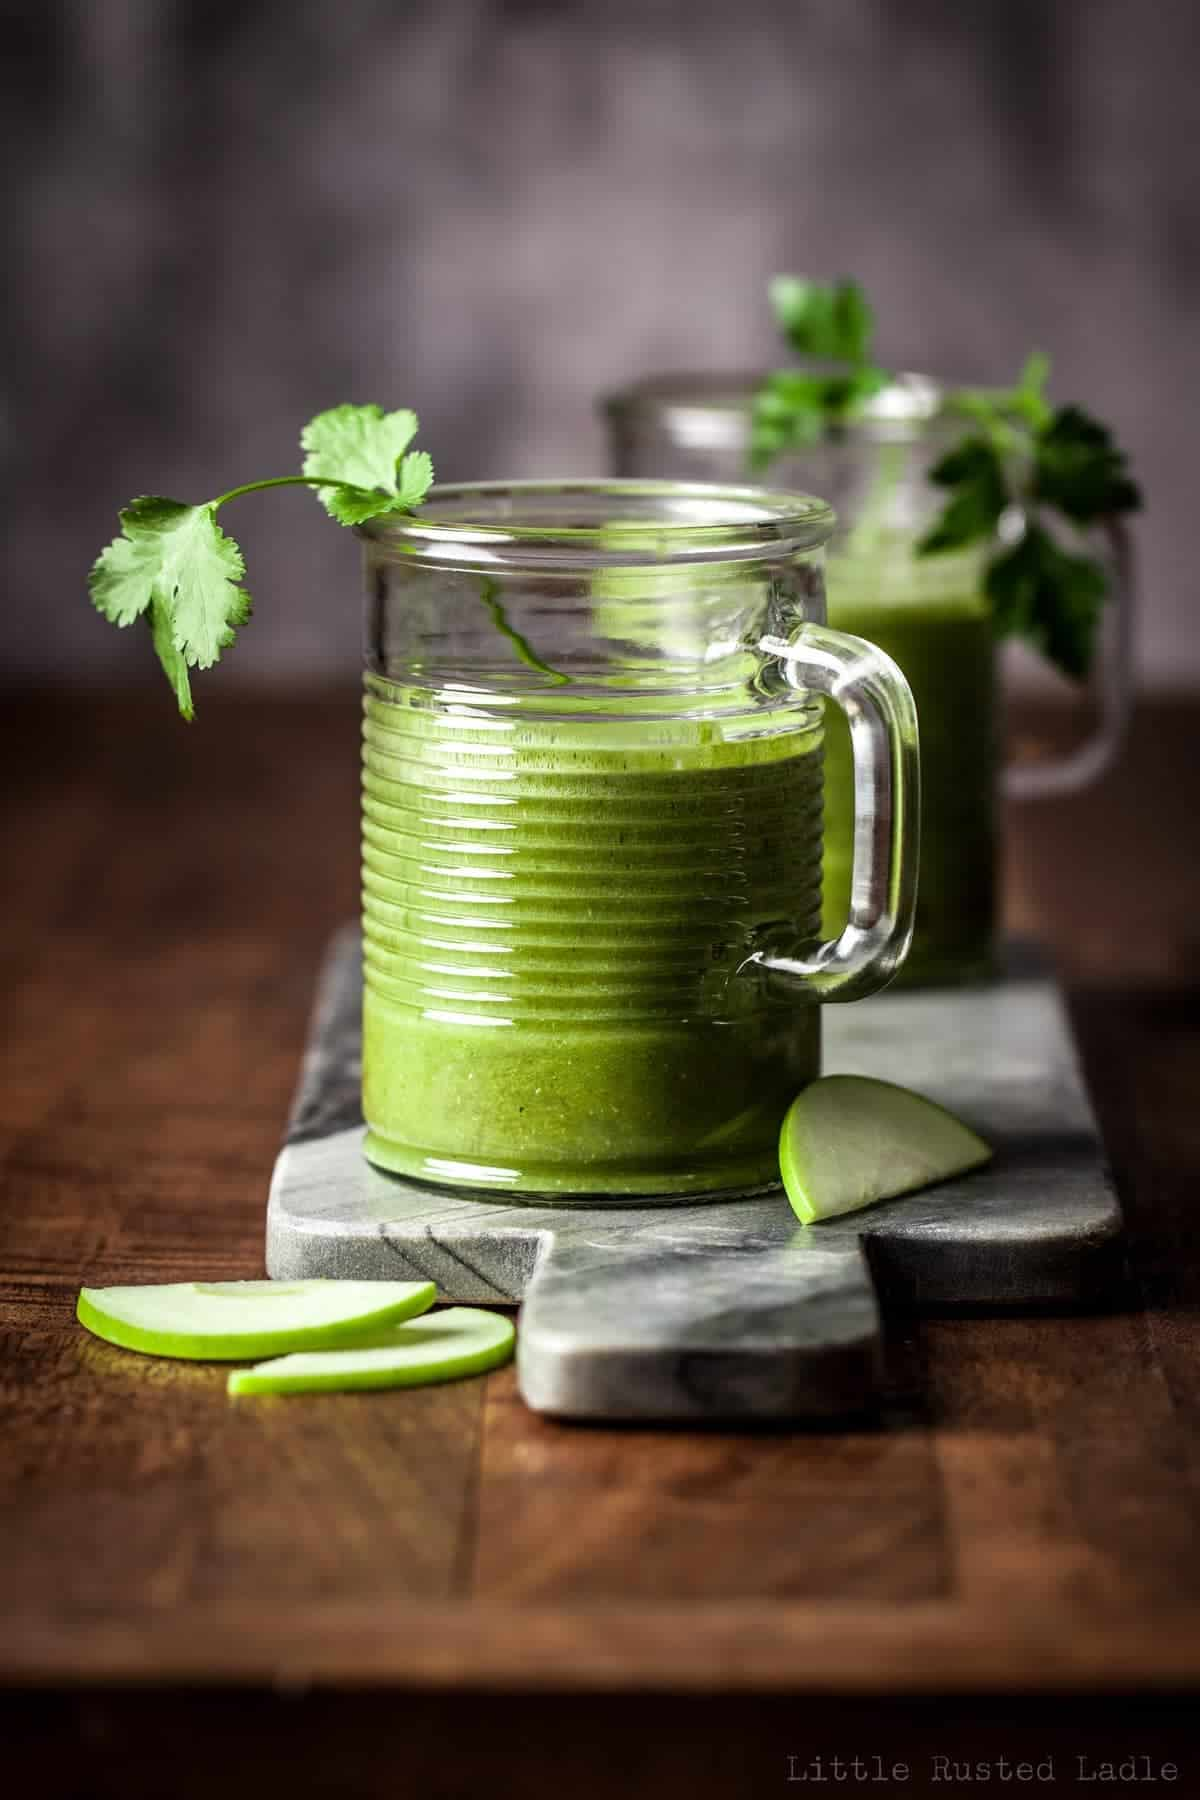 Heavy Metal Detox Green Smoothie - Little Rusted Ladle - Jena Carlin Photography - 030-web WM